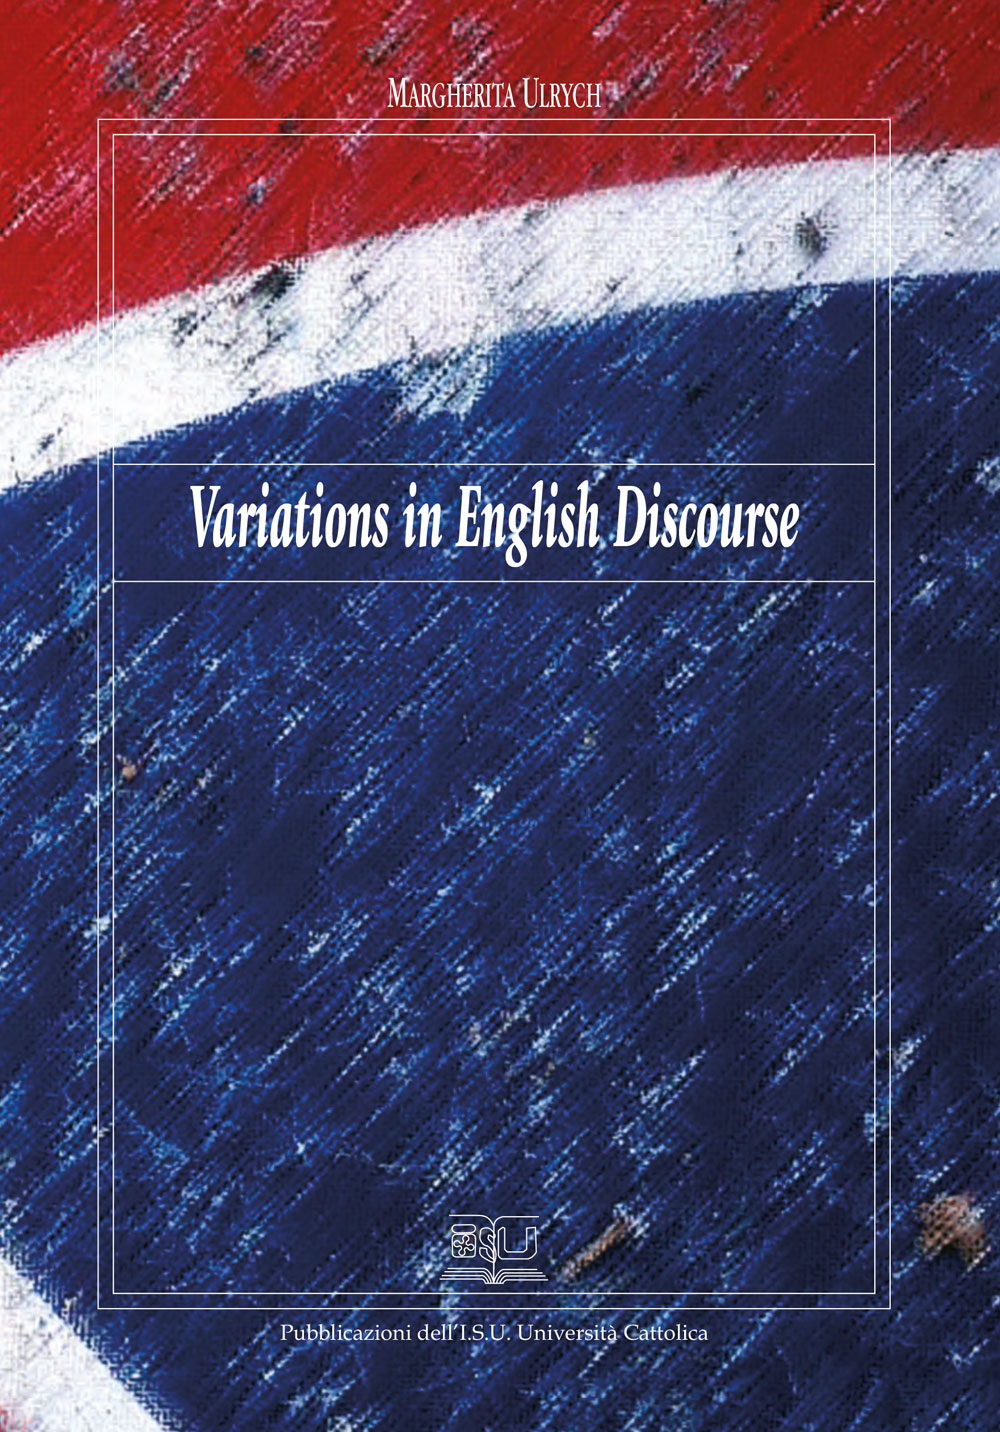 VARIATIONS IN ENGLISH DISCOURSE